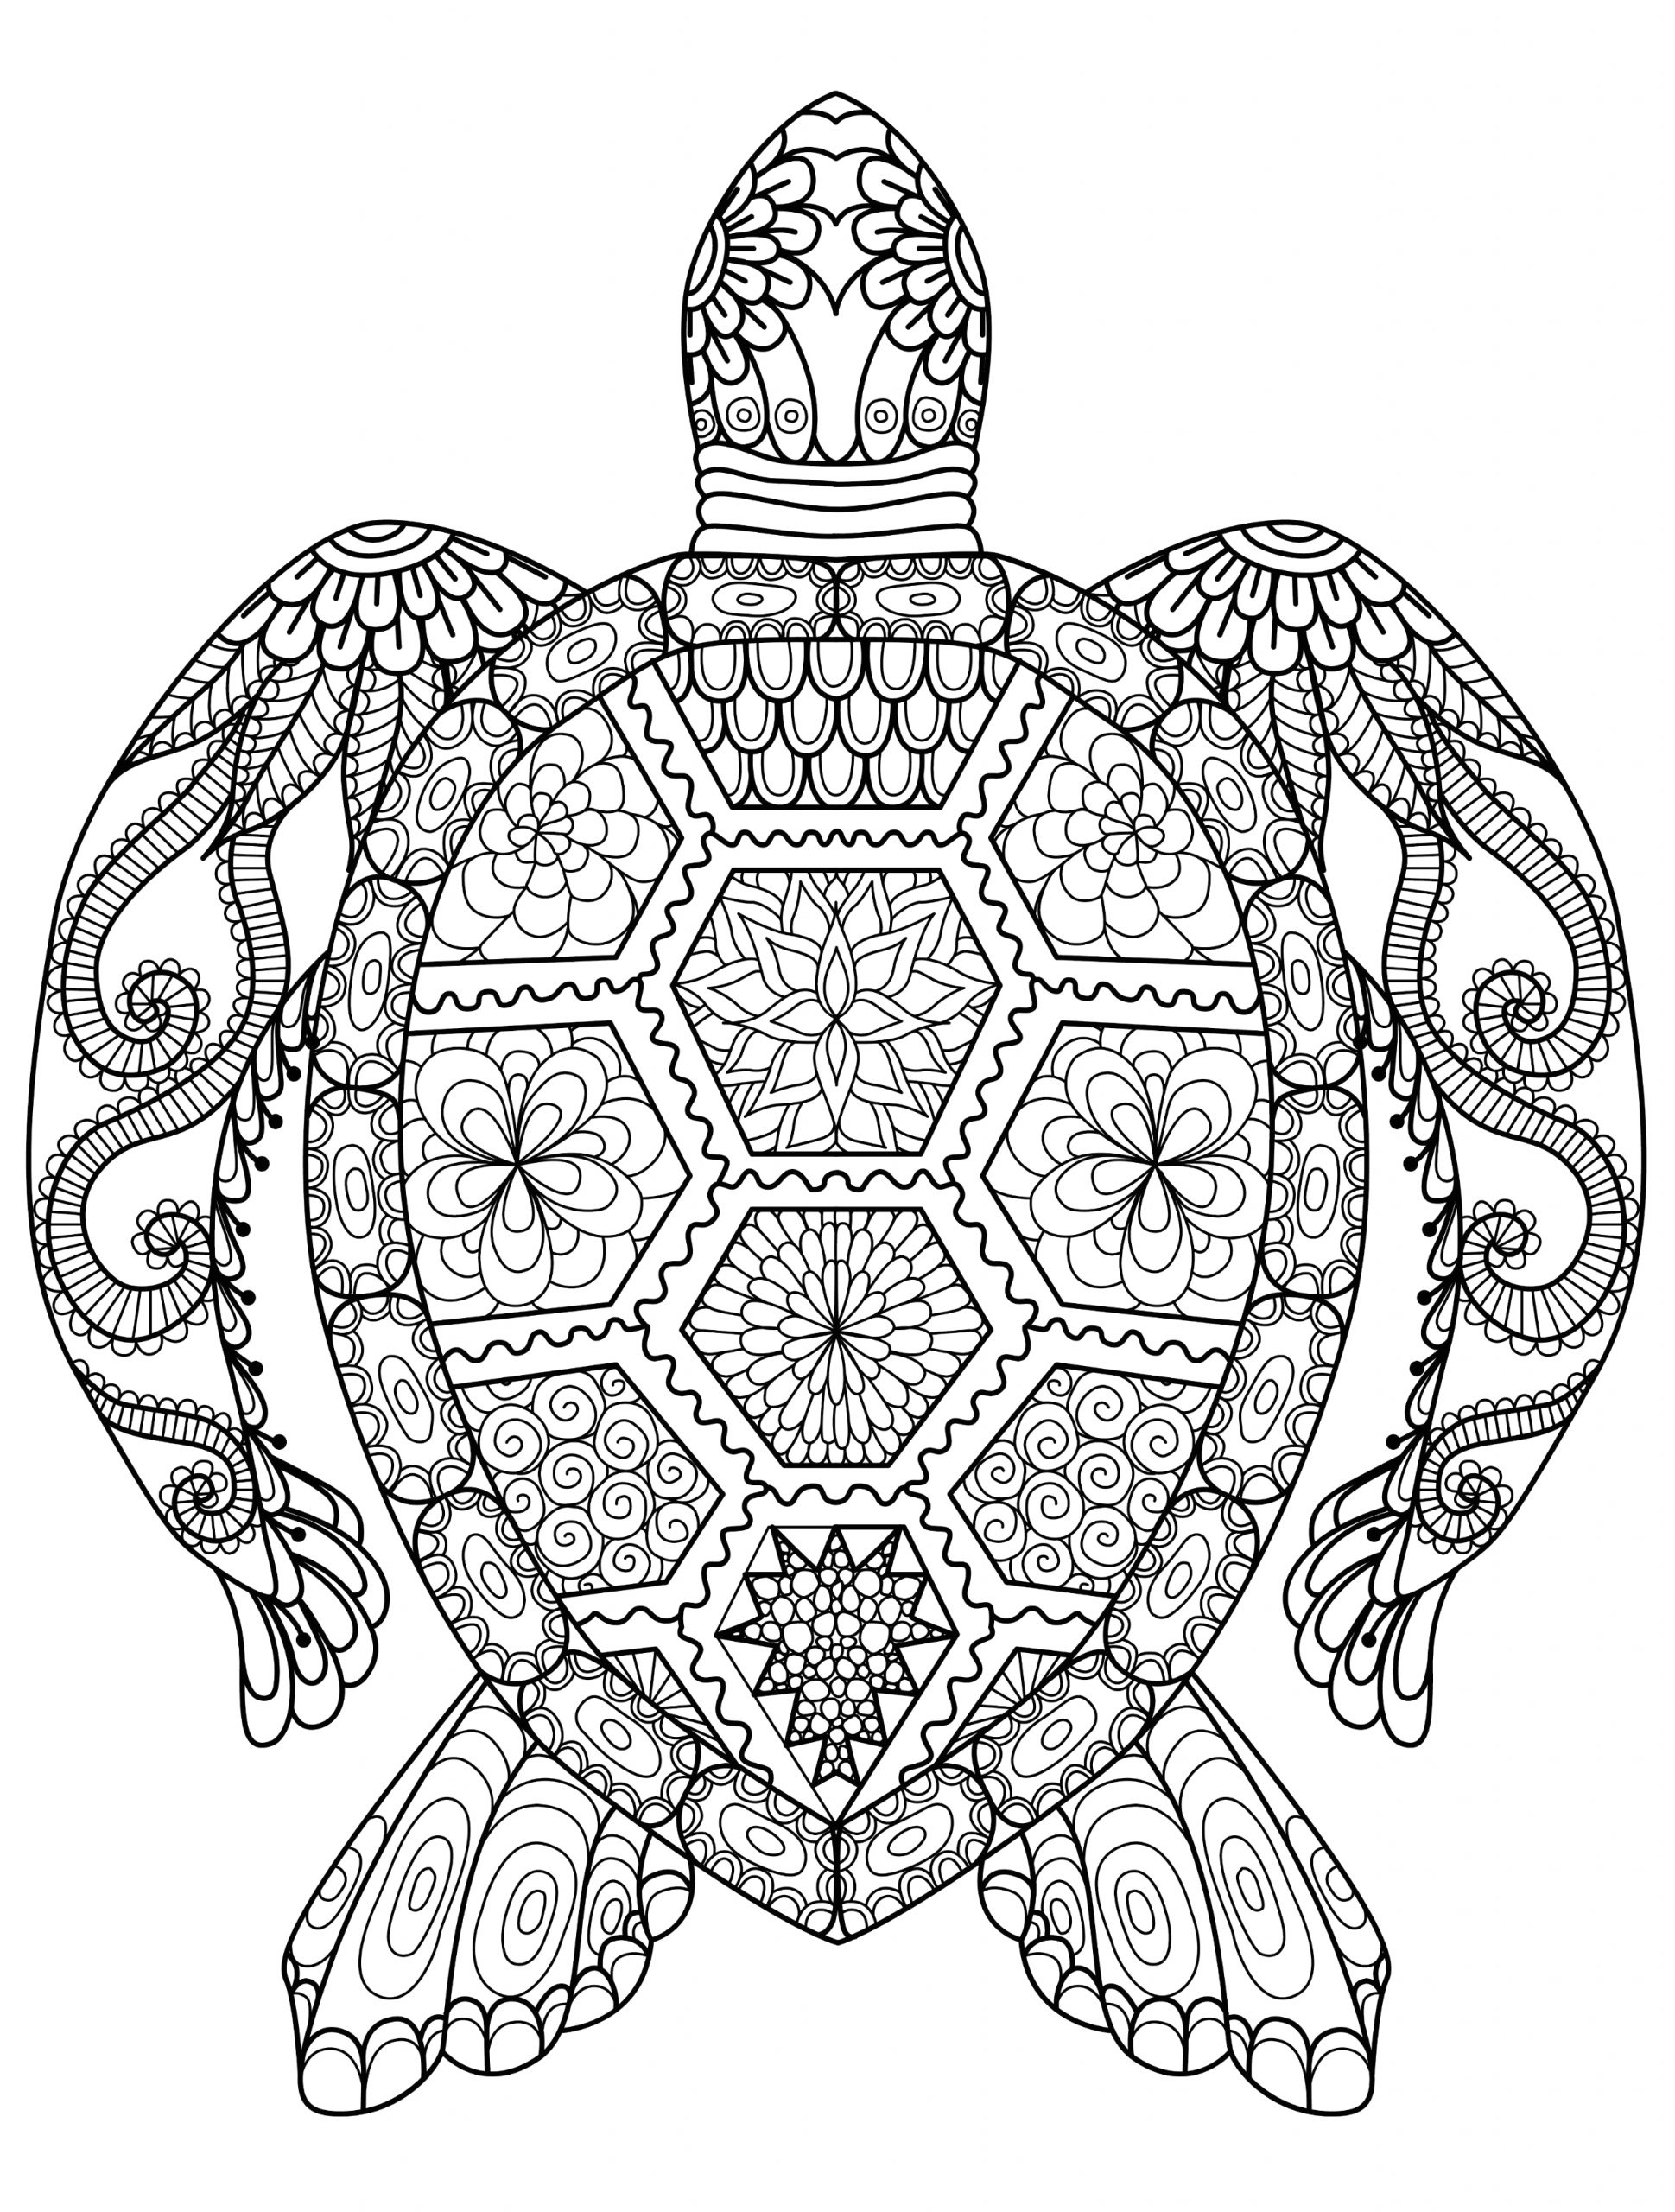 Free Printable Animal Coloring Pages for Adults Adult Coloring Pages Animals Best Coloring Pages for Kids